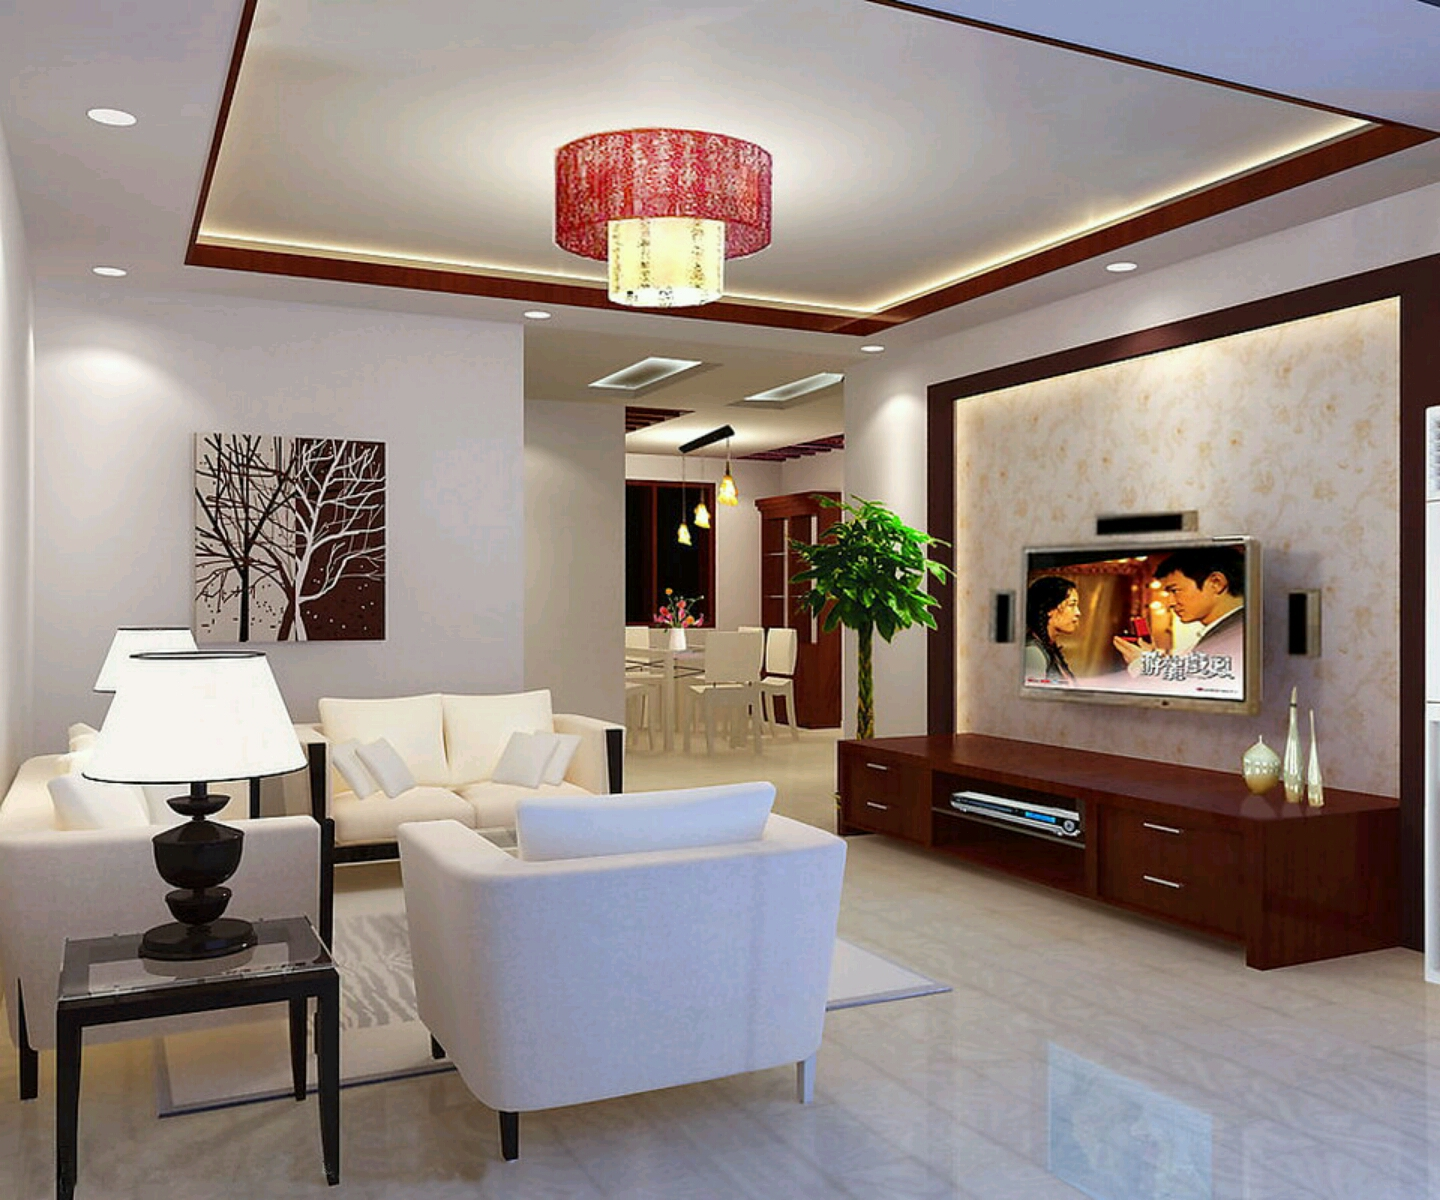 Incredible Living Room Ceiling Design Ideas 1440 x 1200 · 1075 kB · jpeg